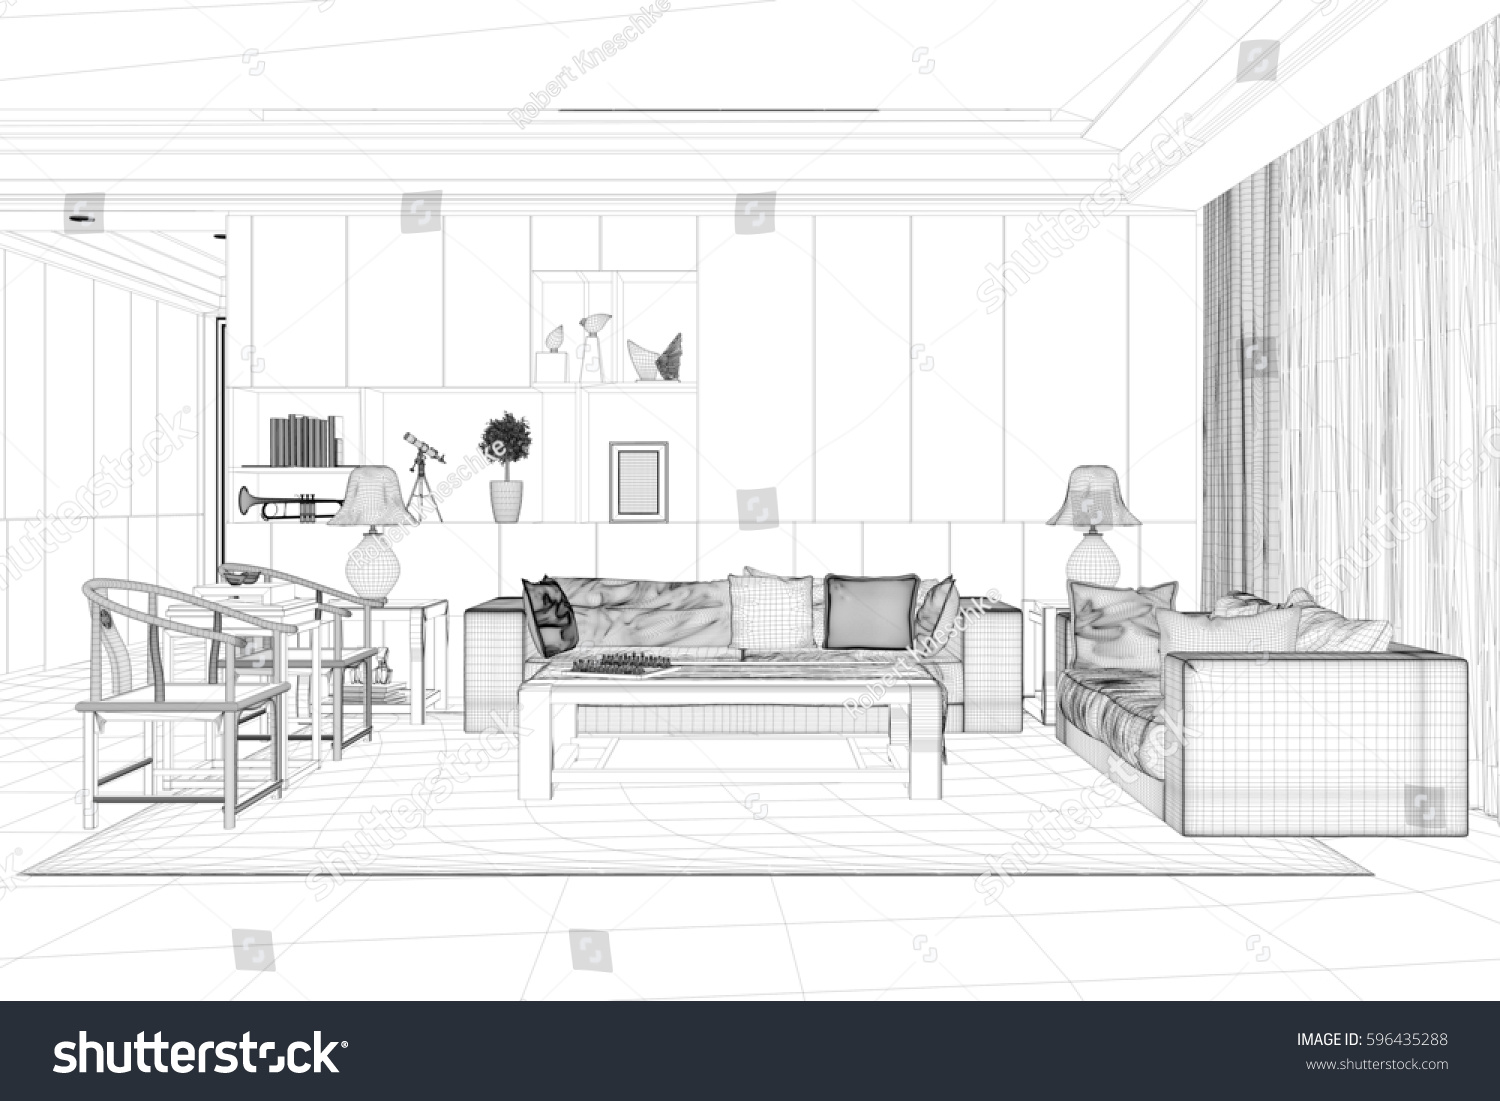 cad model living room sofa chairs stock illustration 596435288 shutterstock. Black Bedroom Furniture Sets. Home Design Ideas